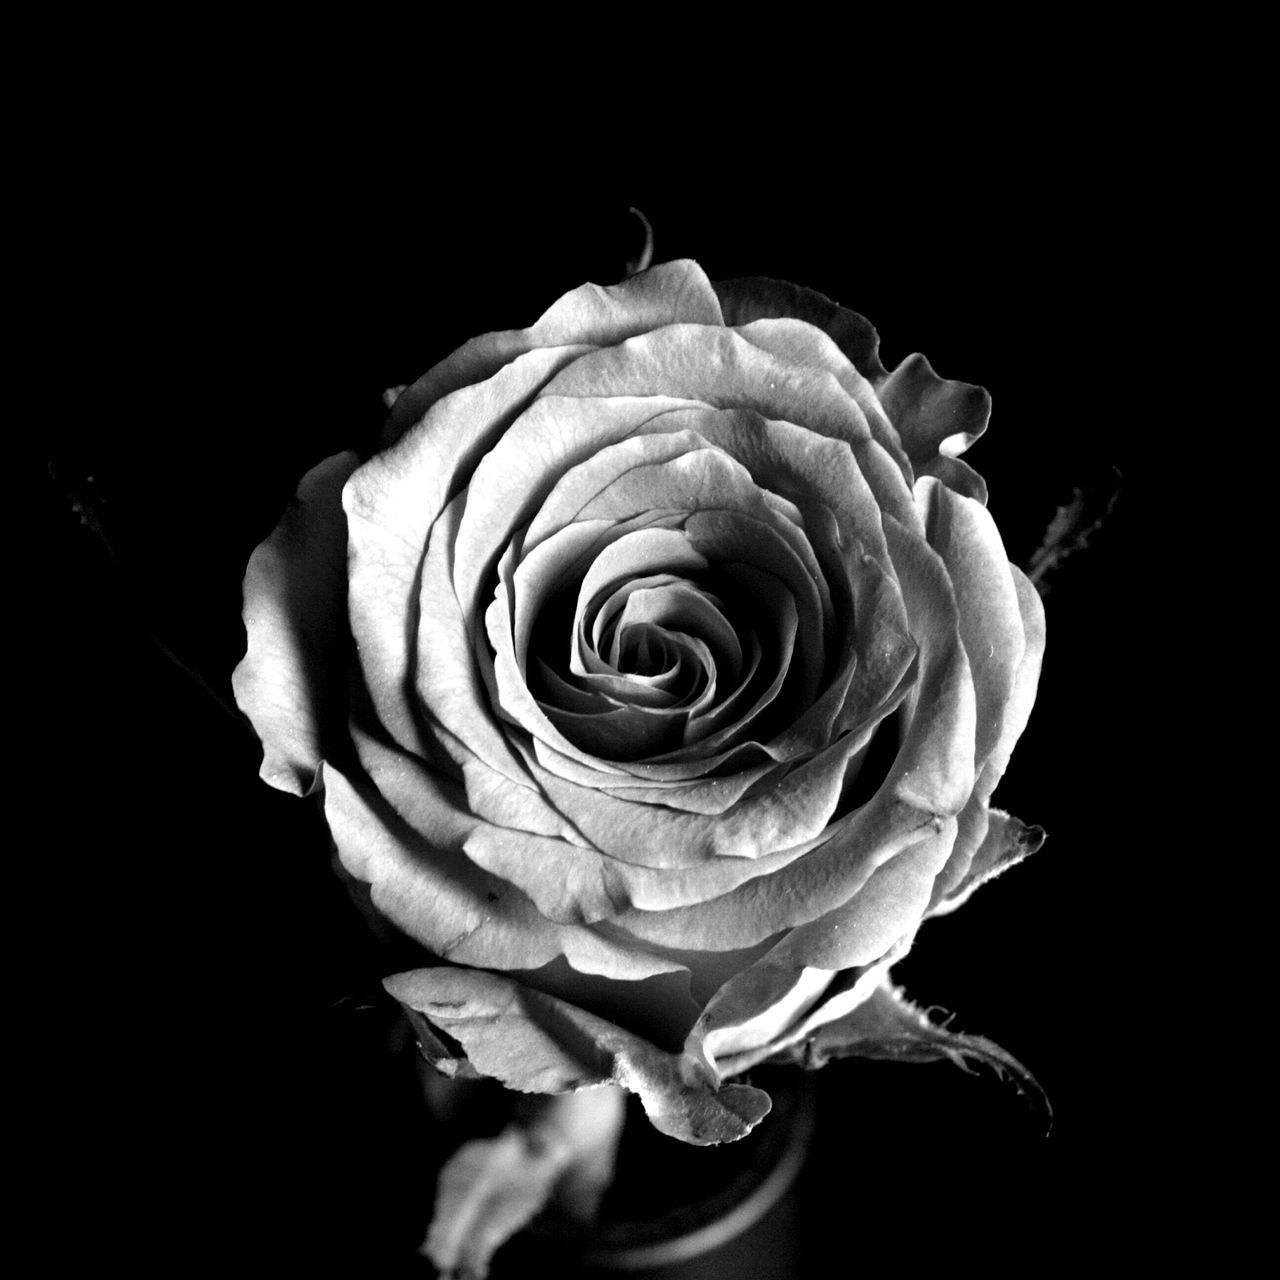 High Angle View Of Rose Blooming Against Black Background